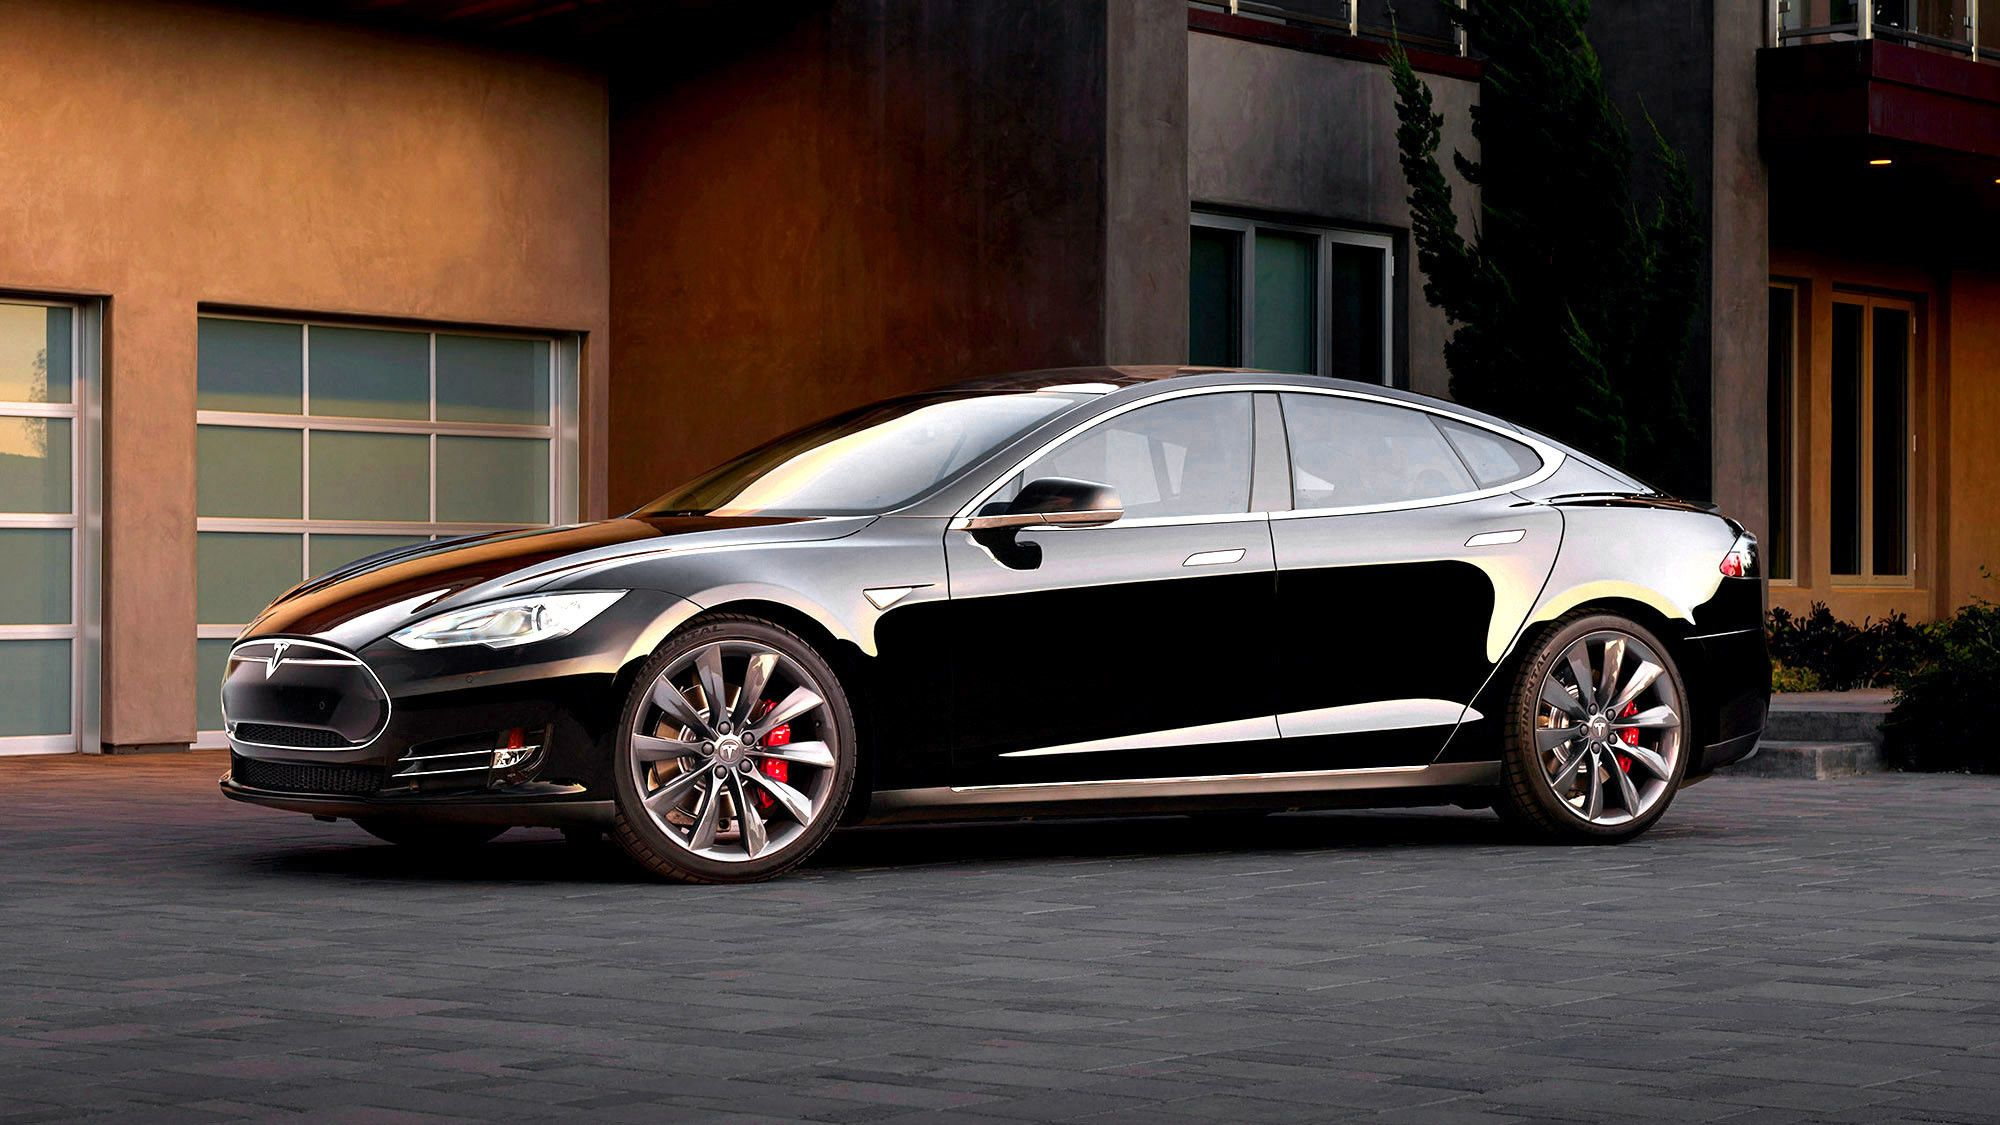 Tesla scores buick soars in new consumer reports auto ratings electric vehicleelectric